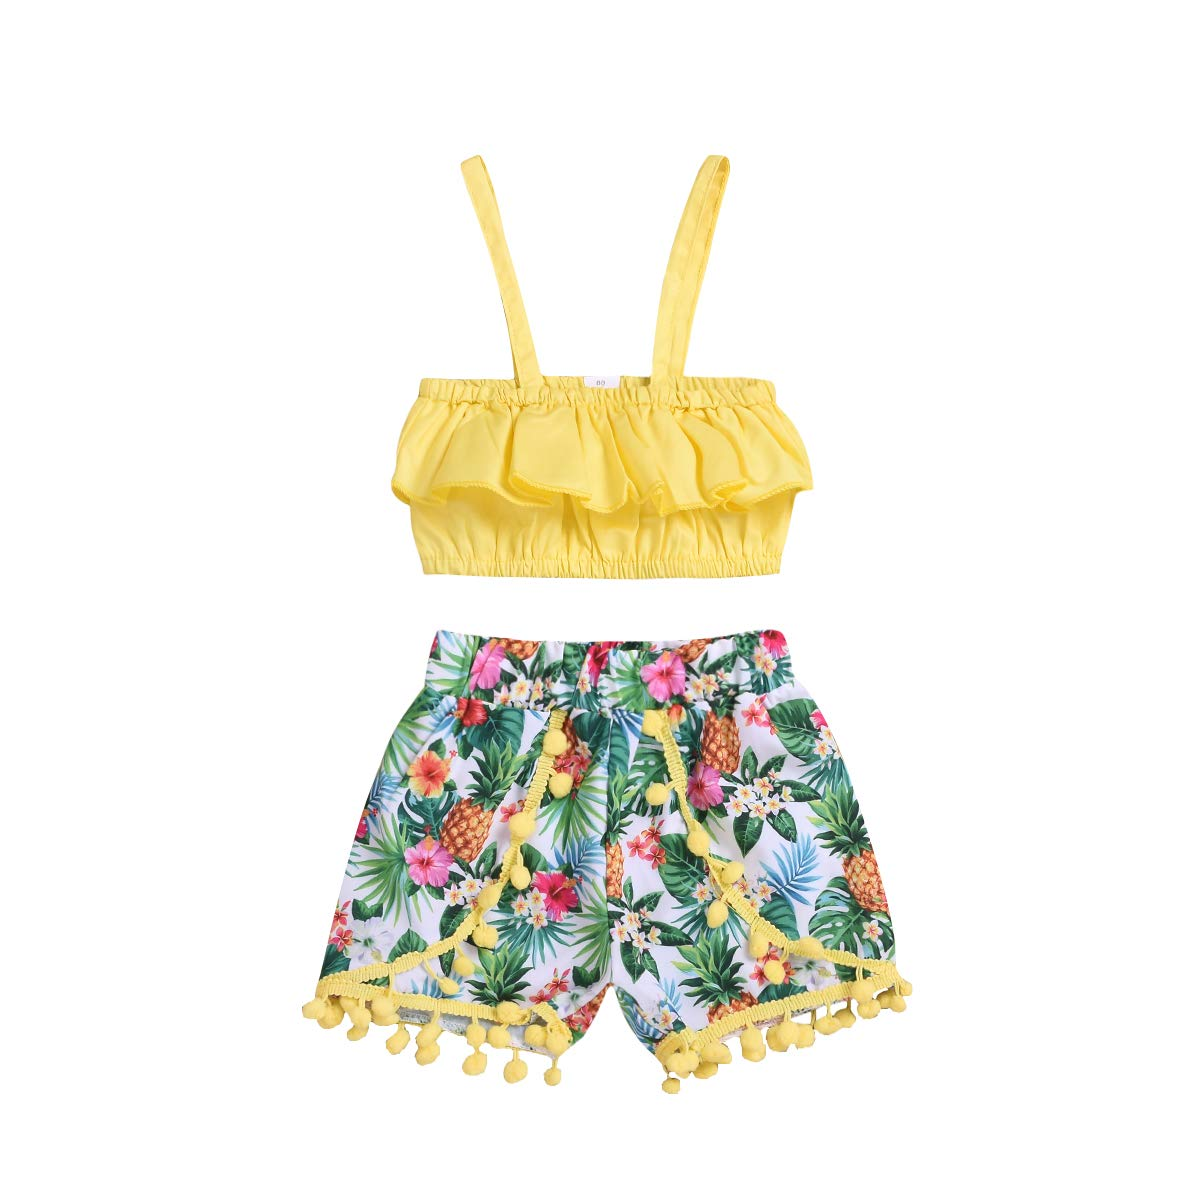 Toddler Baby Girls Strap Outfits Halter Ruffle Tube Crop Top+Tassel Pineapple Shorts Pant Summer Clothes Set